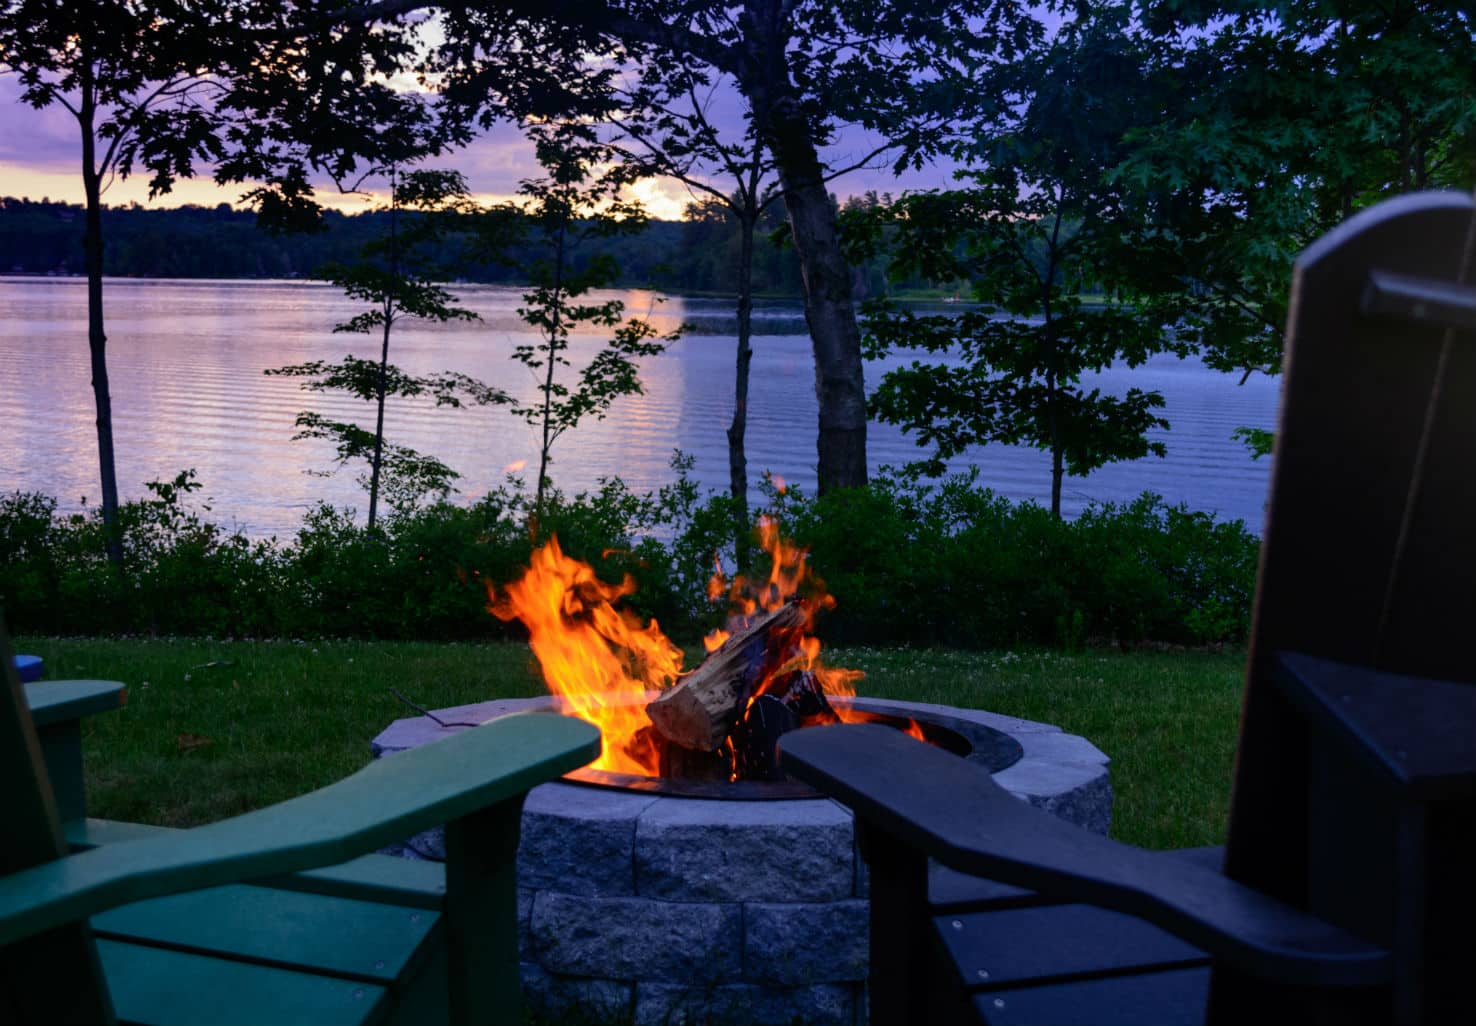 Empty chairs next to firepit overlooking lake